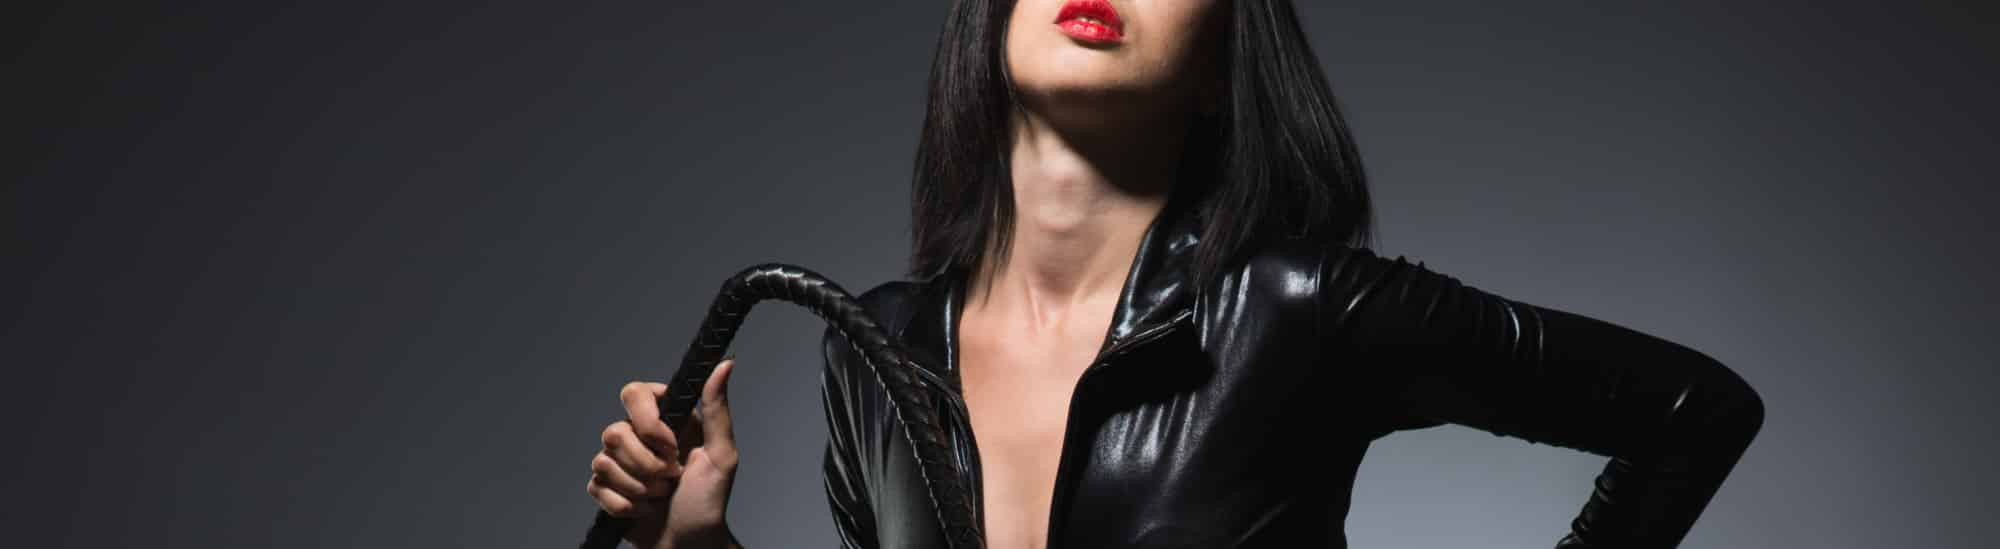 Mistress Misery A story of male submission